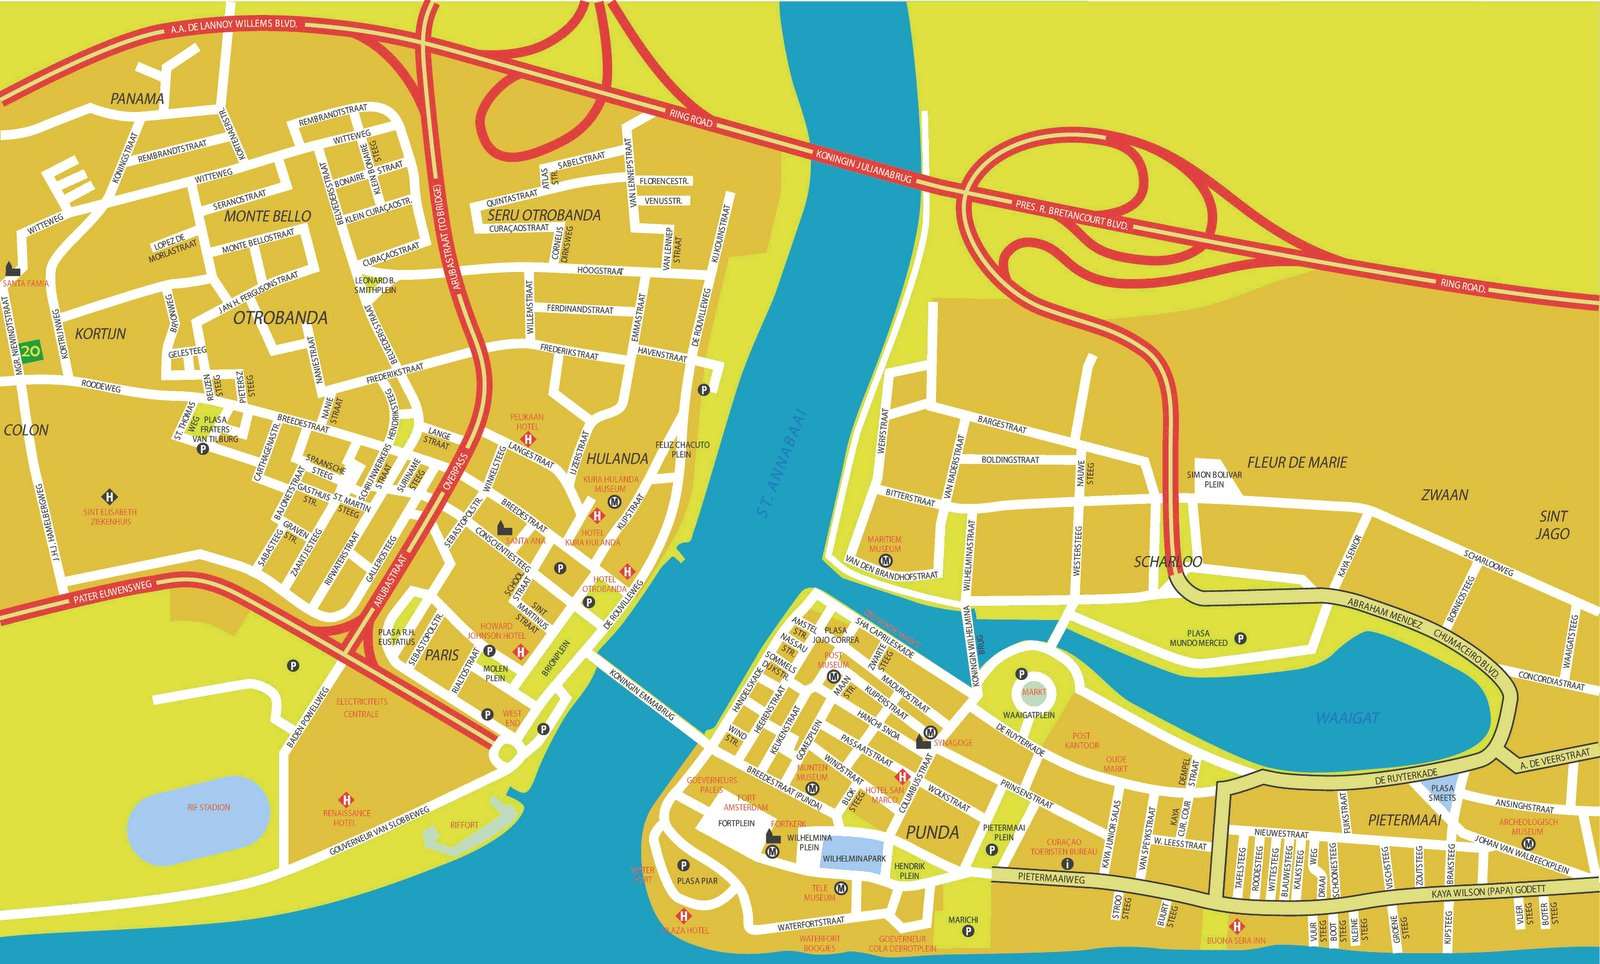 Large Willemstad Maps for Free Download and Print | High ... on faroe islands map, hato international airport, barbados map, saint martin, aruba map, netherlands antillean gulden, jair jurrjens, costa rica map, papiamento language, bonaire map, puerto rico map, venezuela map, st maarten map, caicos map, bahamas map, saint kitts and nevis, libya map, panama map, martinique map, antigua map, saint vincent and the grenadines, suriname map, caribbean map, taiwan map, sint eustatius, guam map, trinidad map, bahrain map,